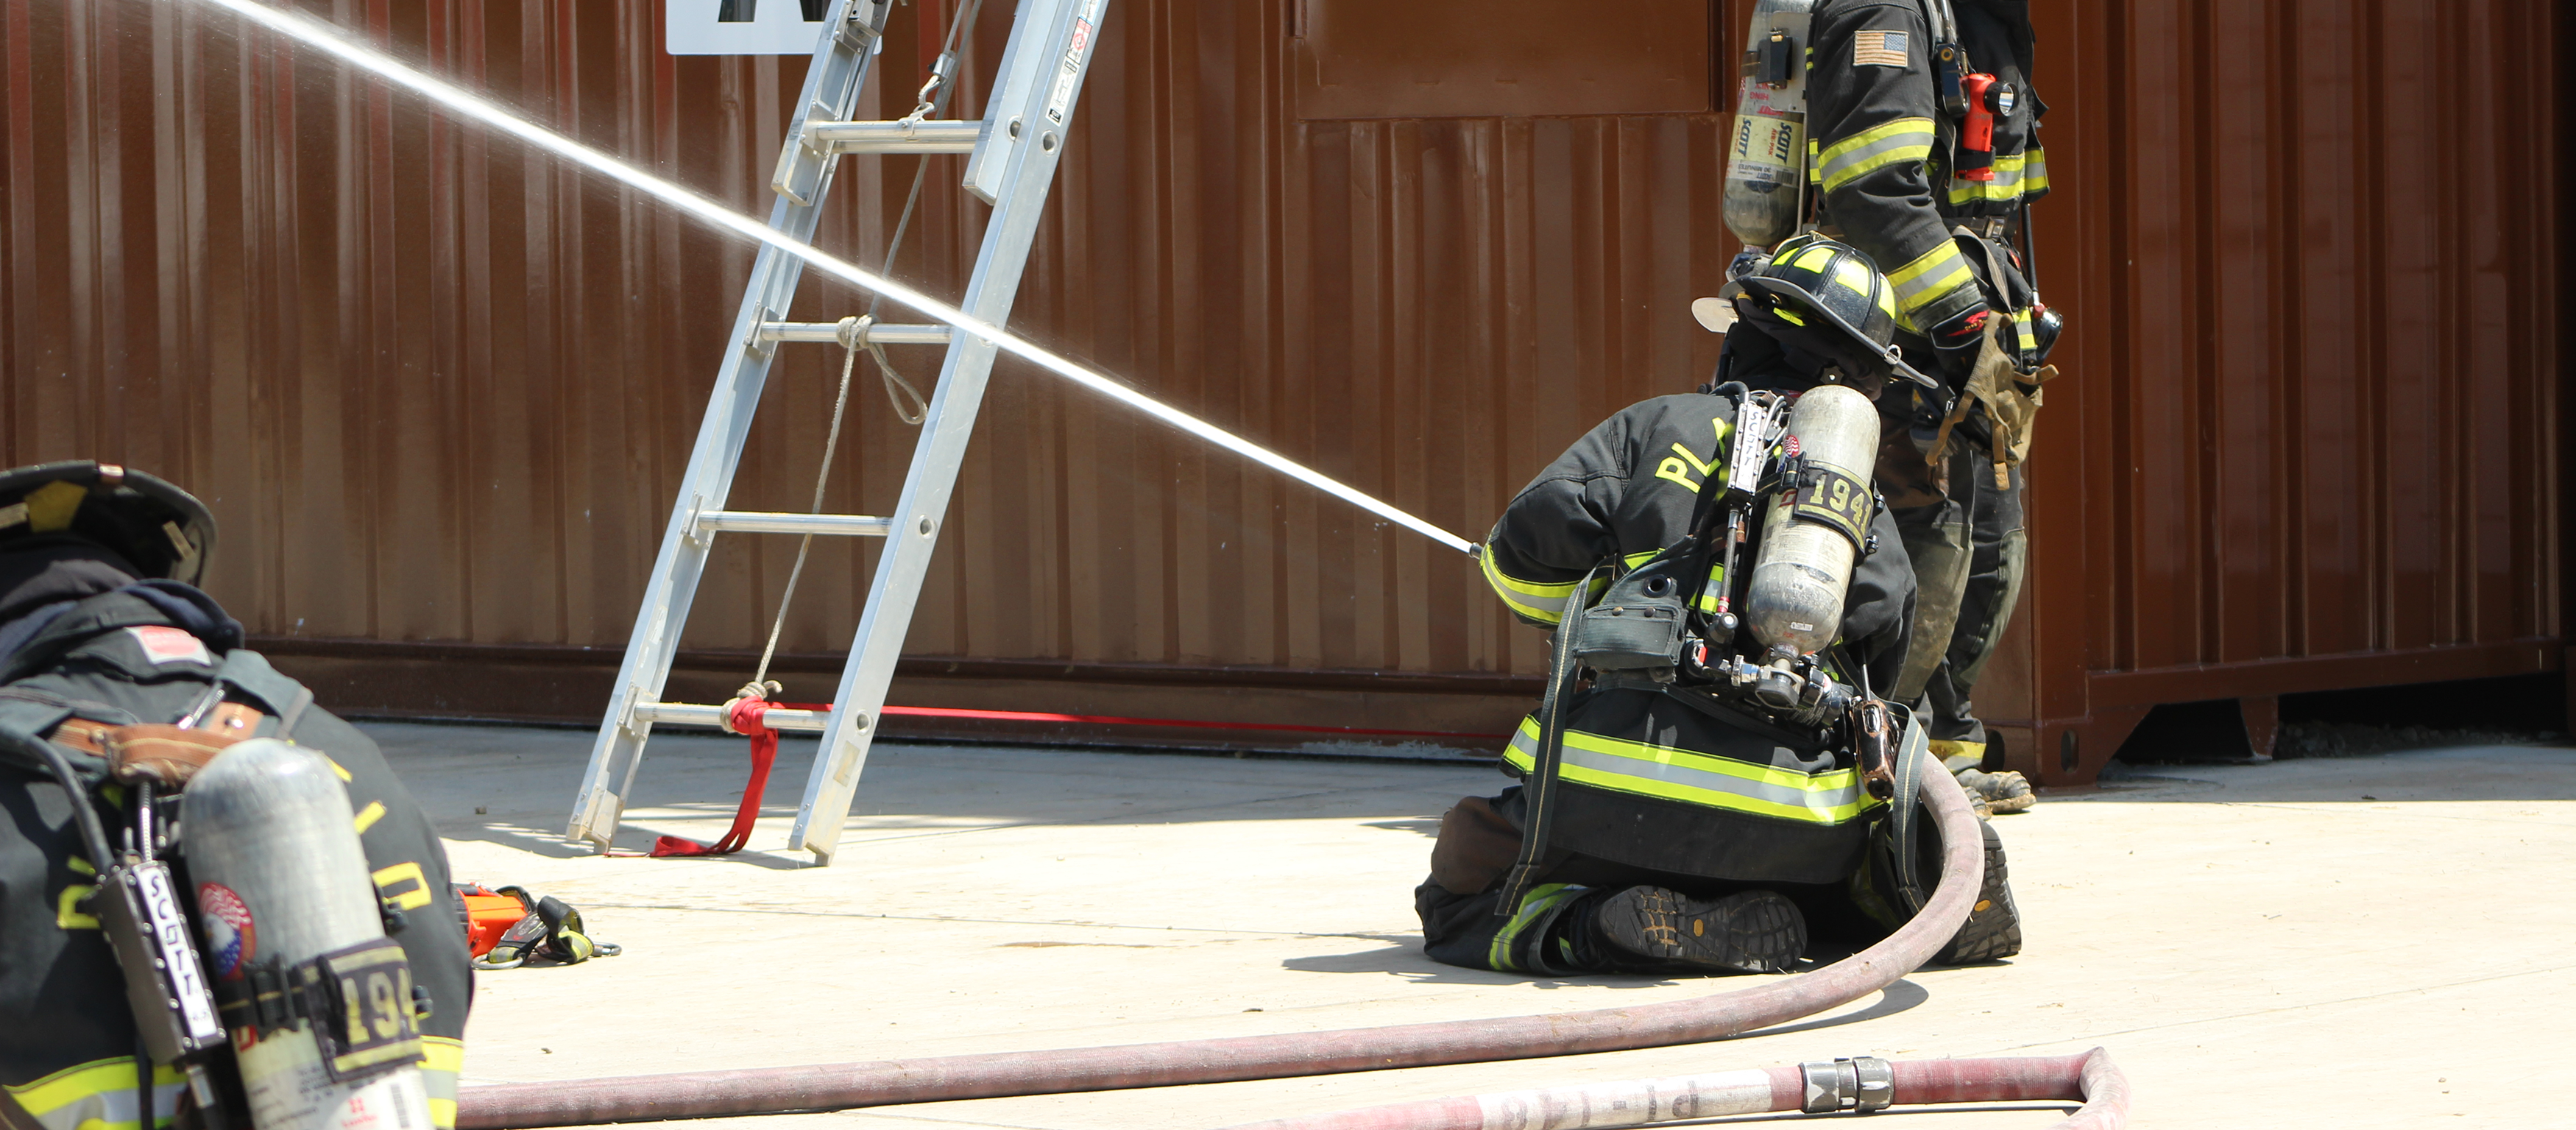 firefighter spraying the fire hose